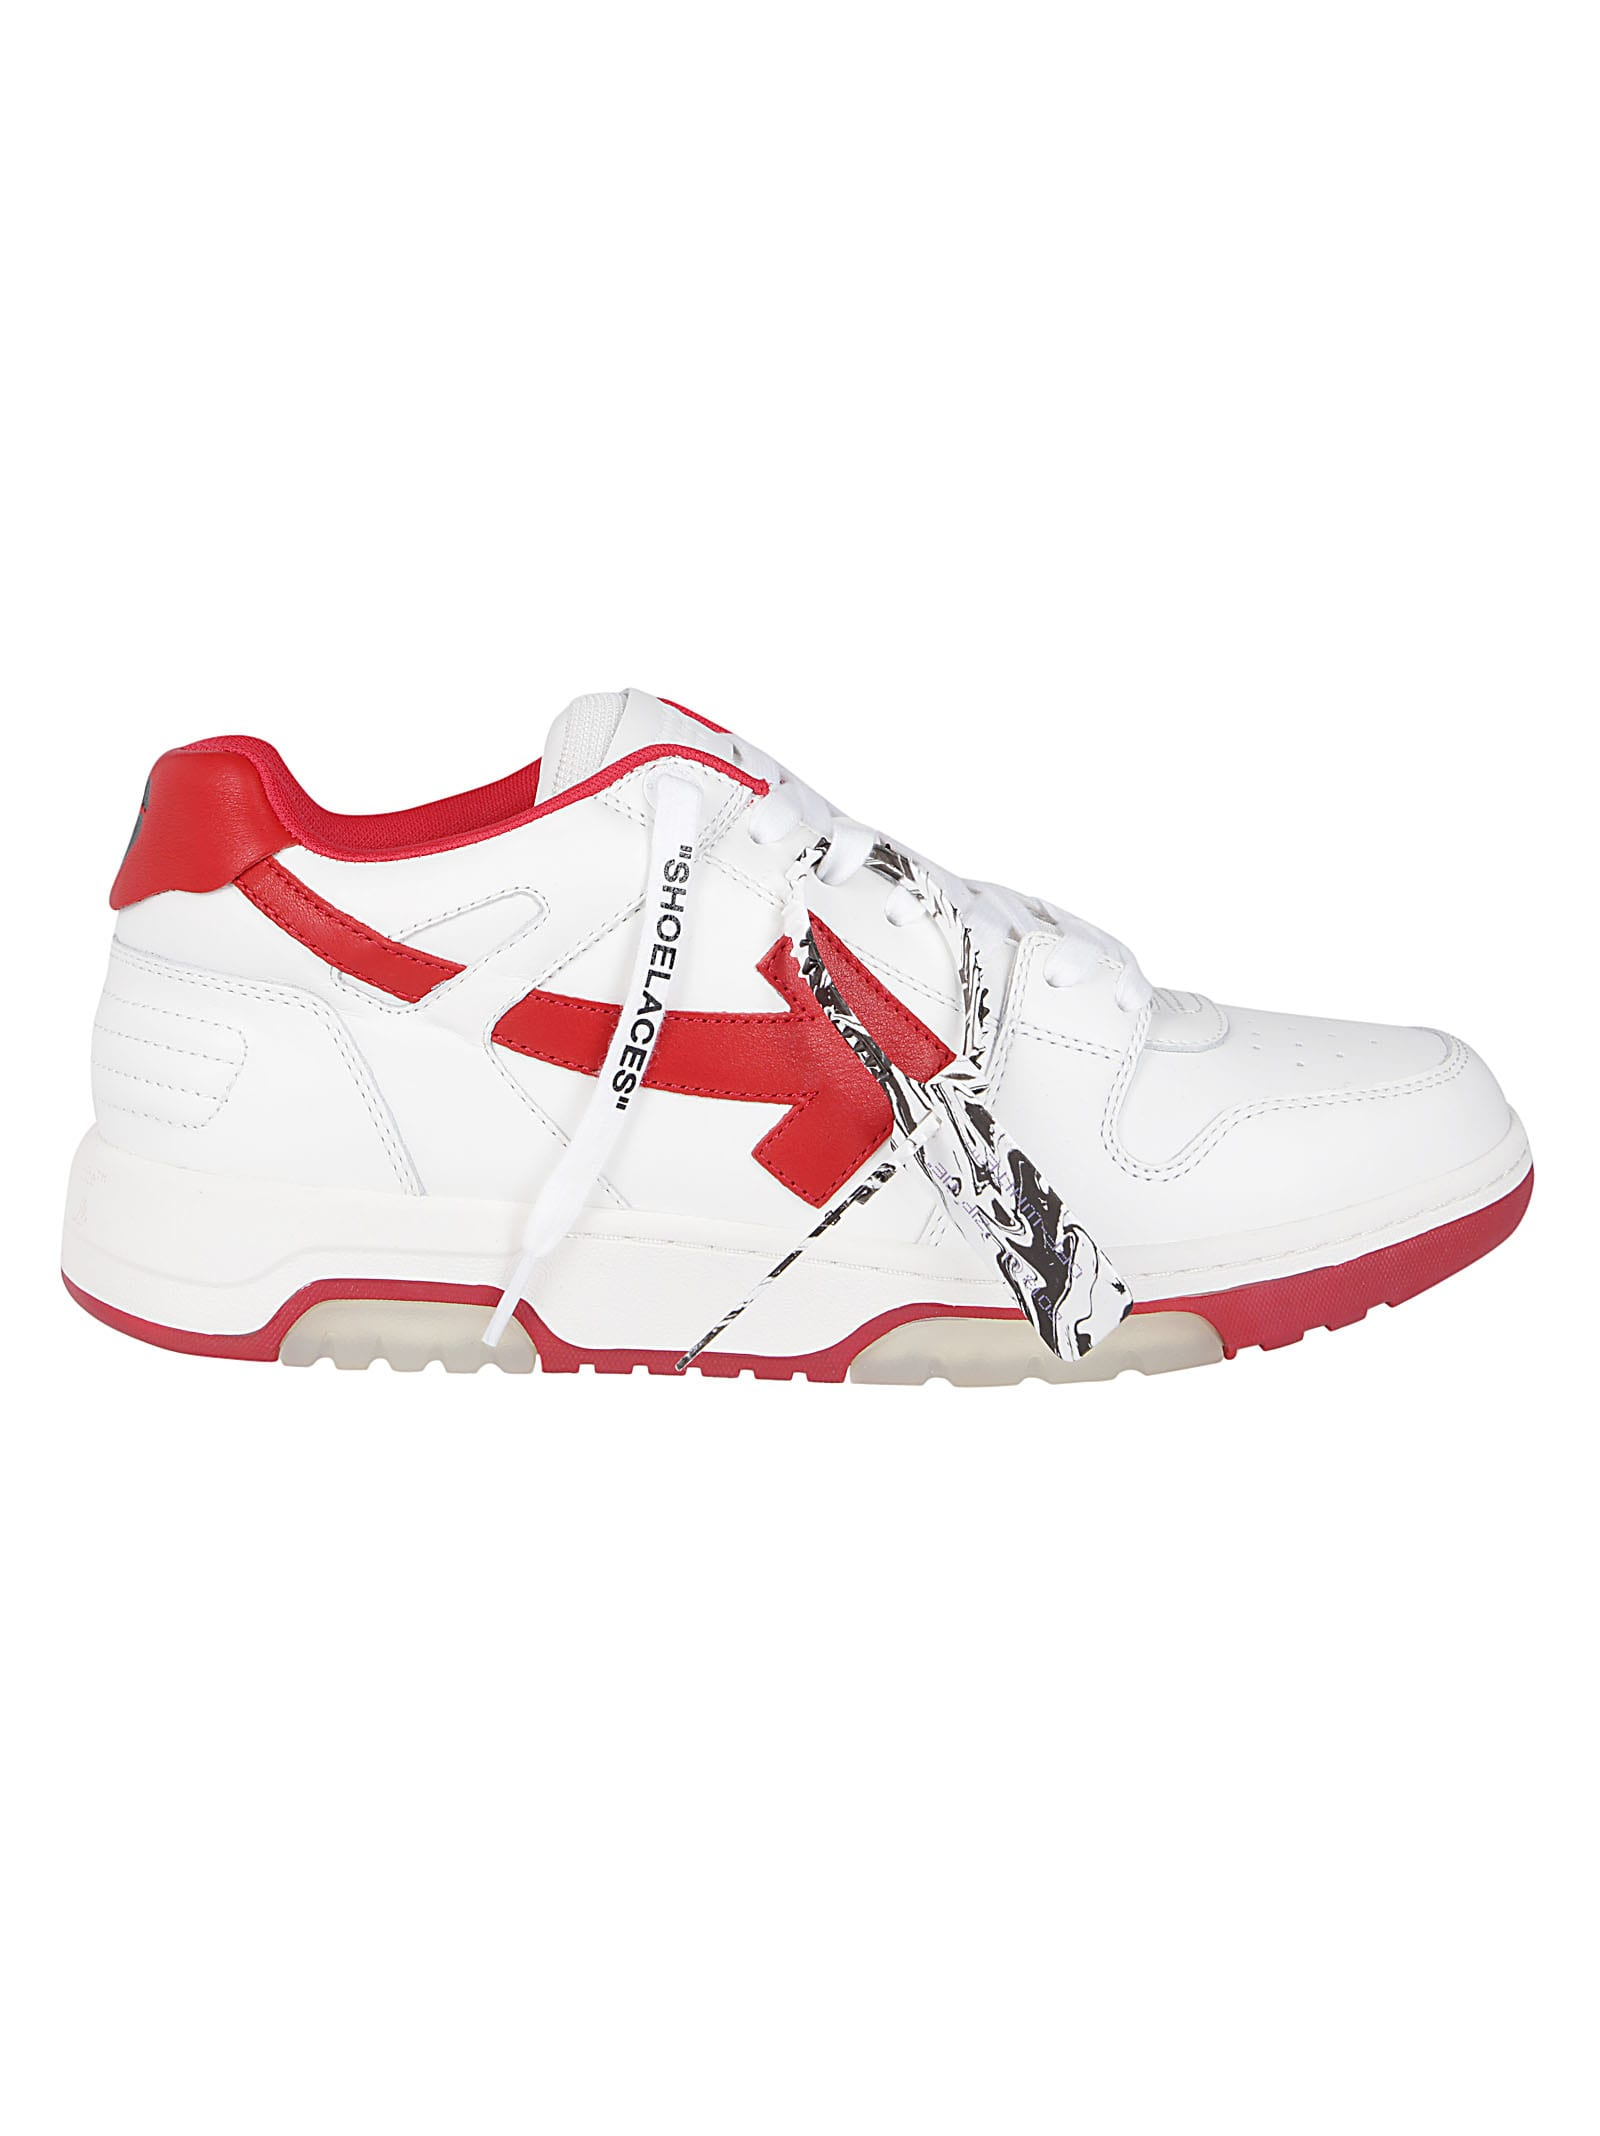 Off-White WHITE AND RED LEATHER OUT OF OFFICE SNEAKERS